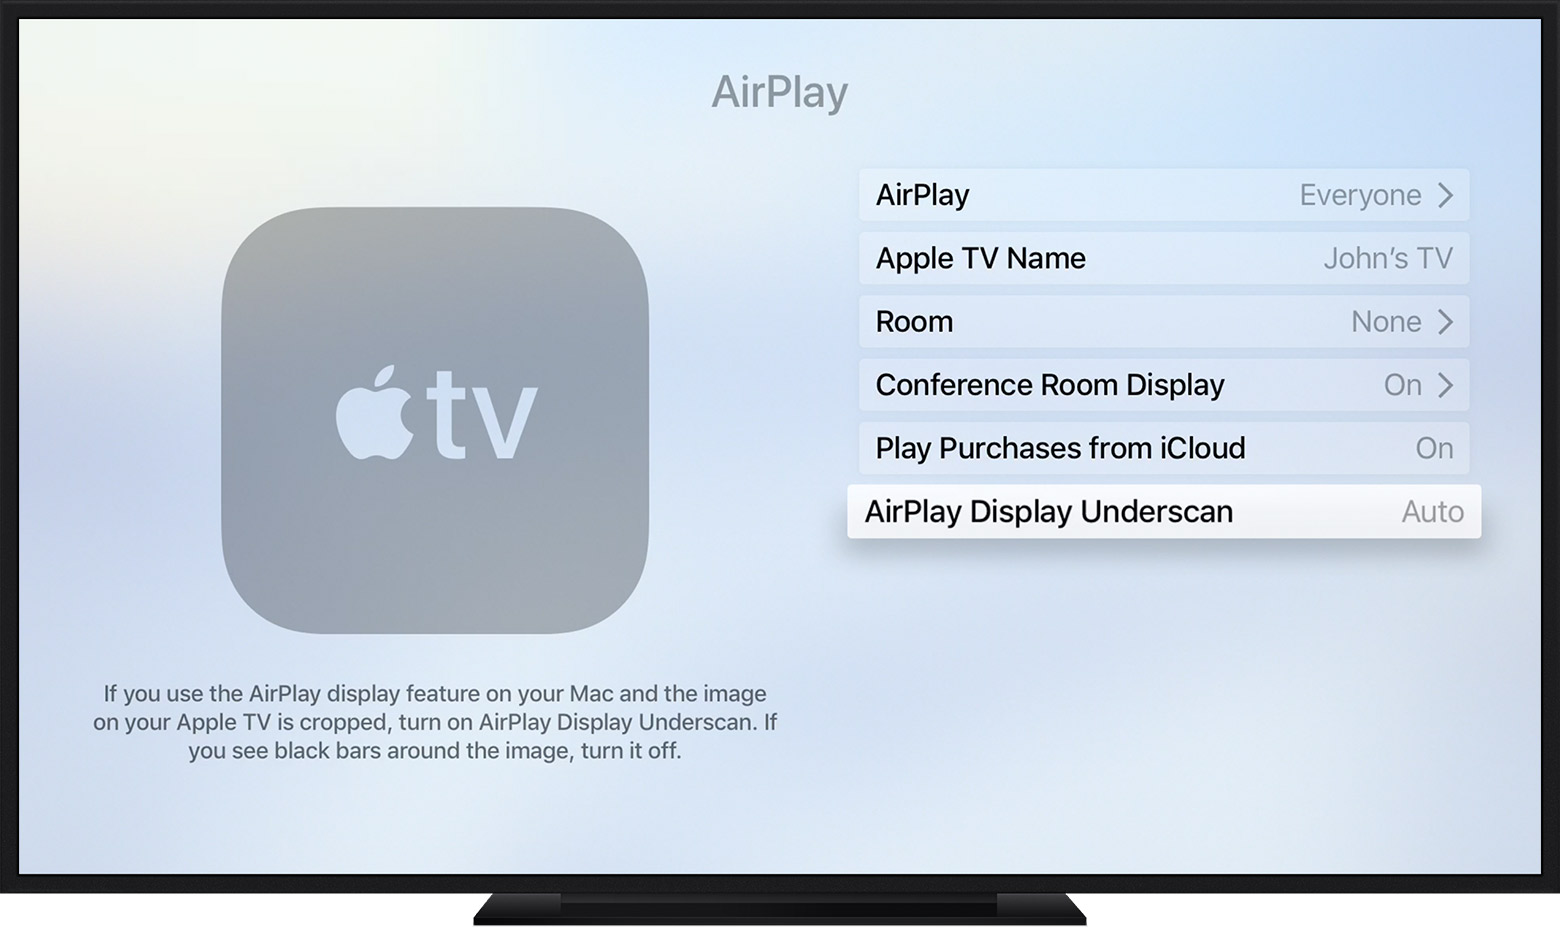 First: Make Sure Your AirPlay Is Enabled on Your Apple TV